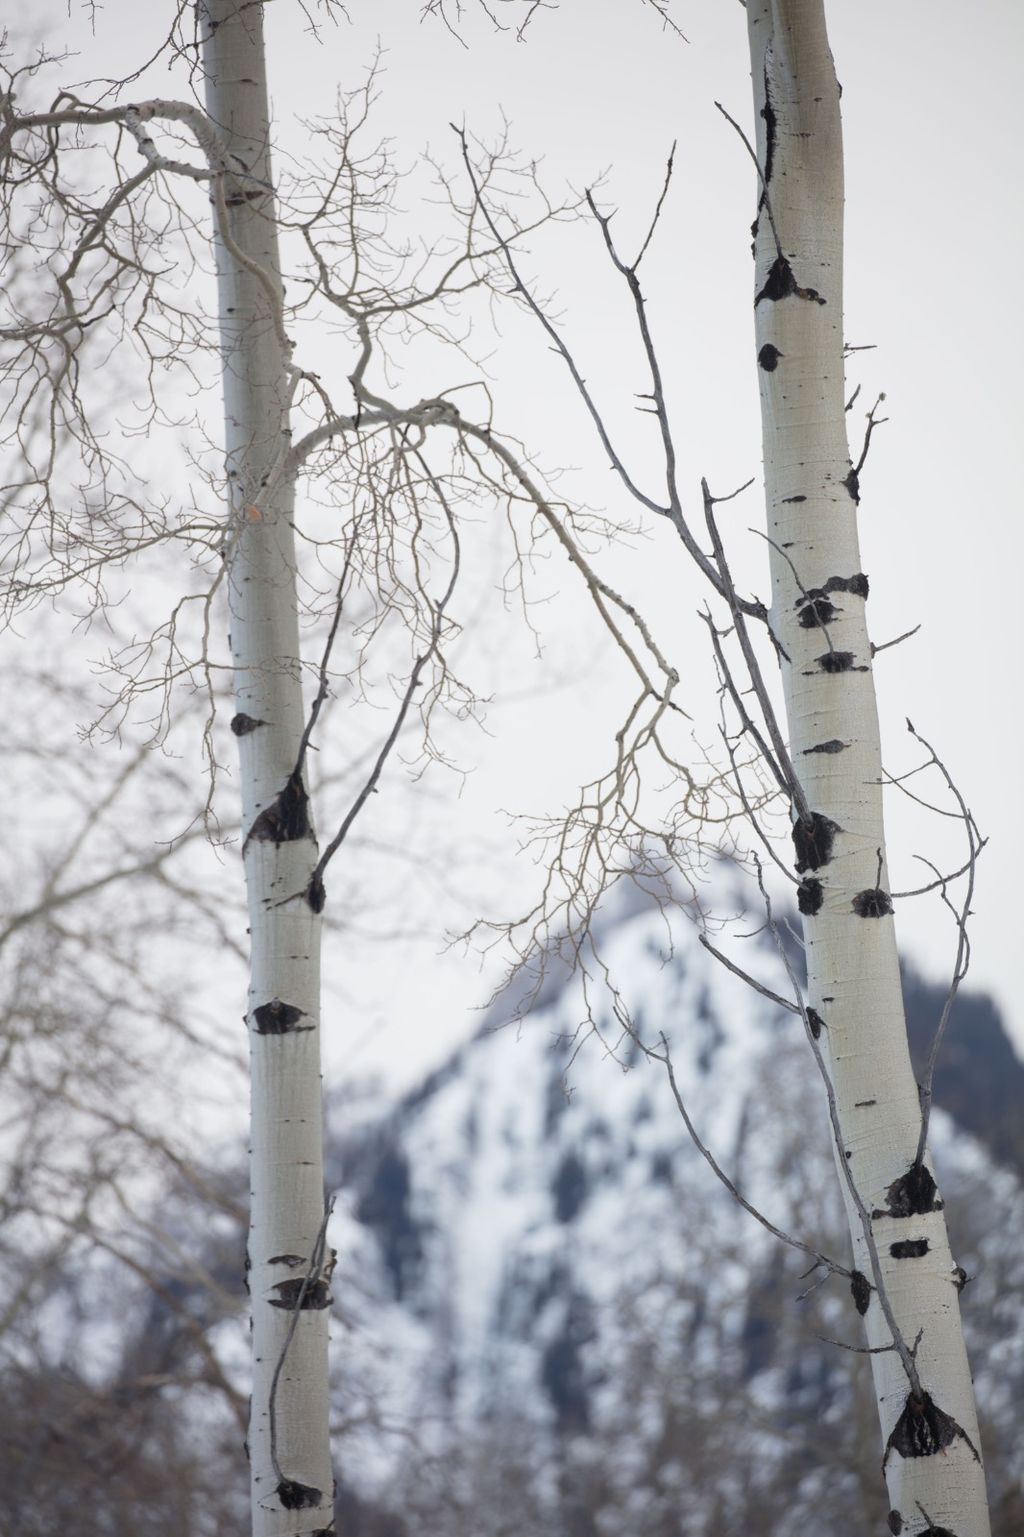 Canadian Rockies 008: birches and mountain